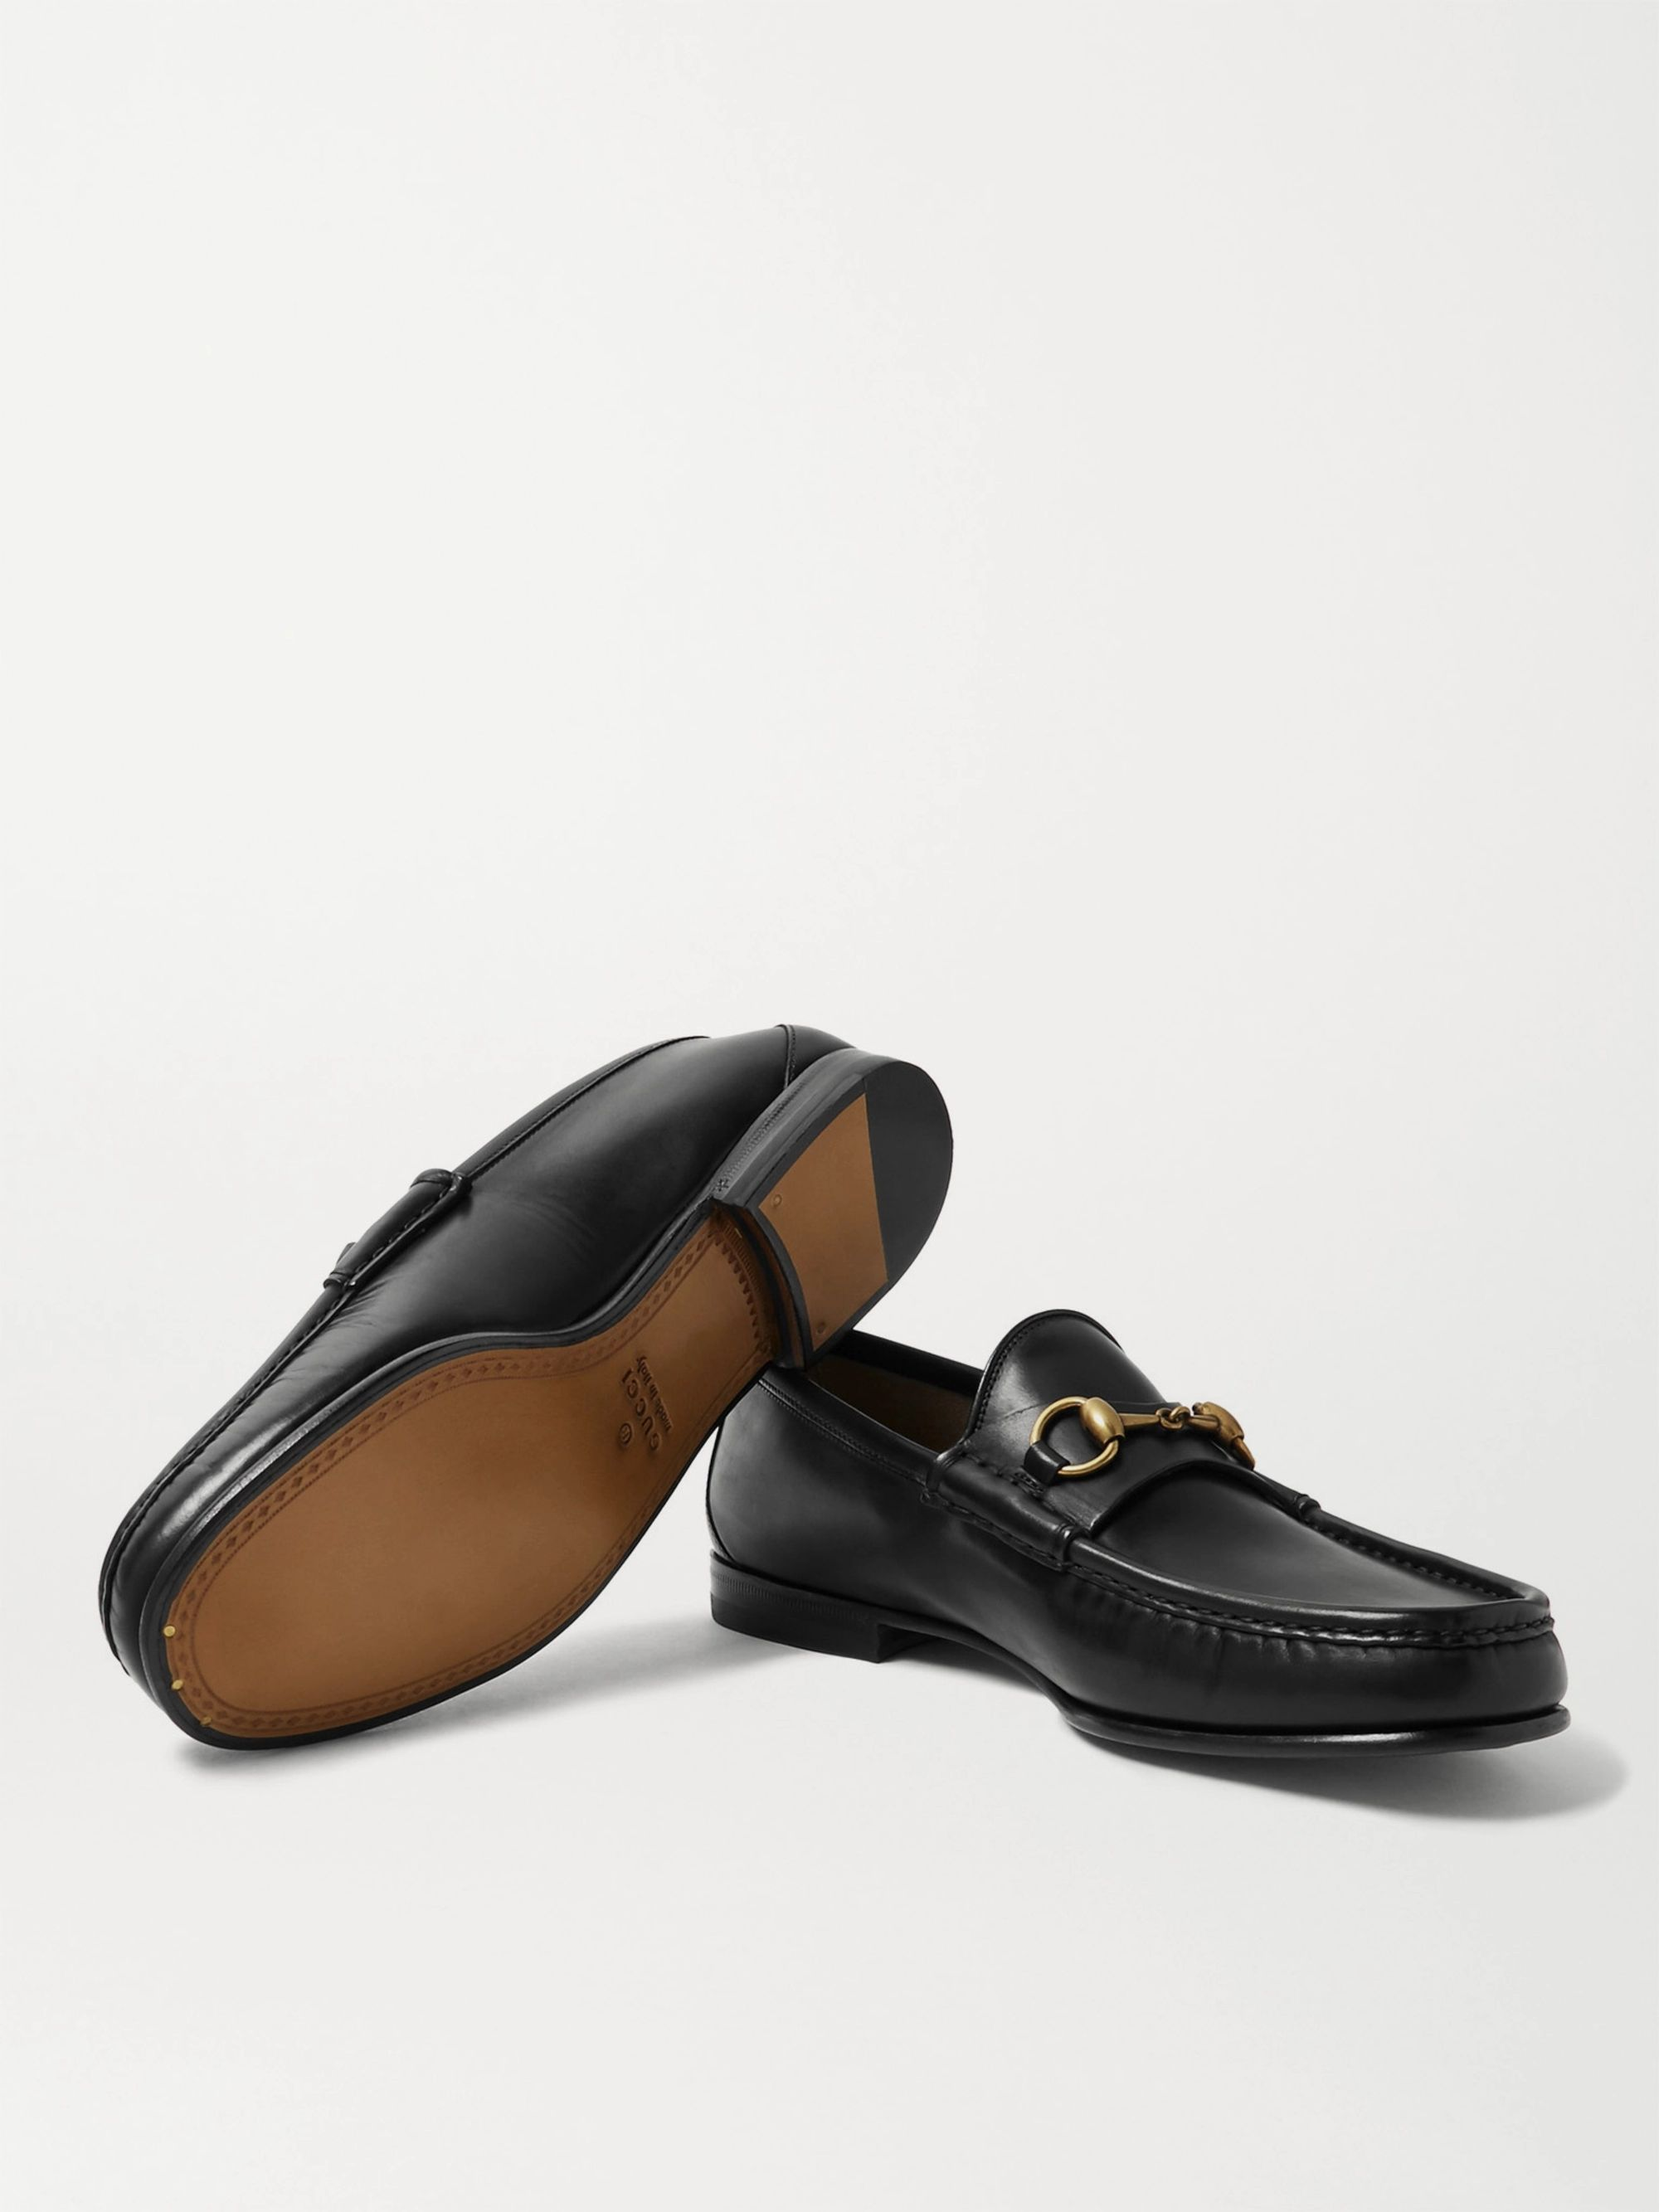 Gucci Roos Horsebit Burnished-Leather Loafers